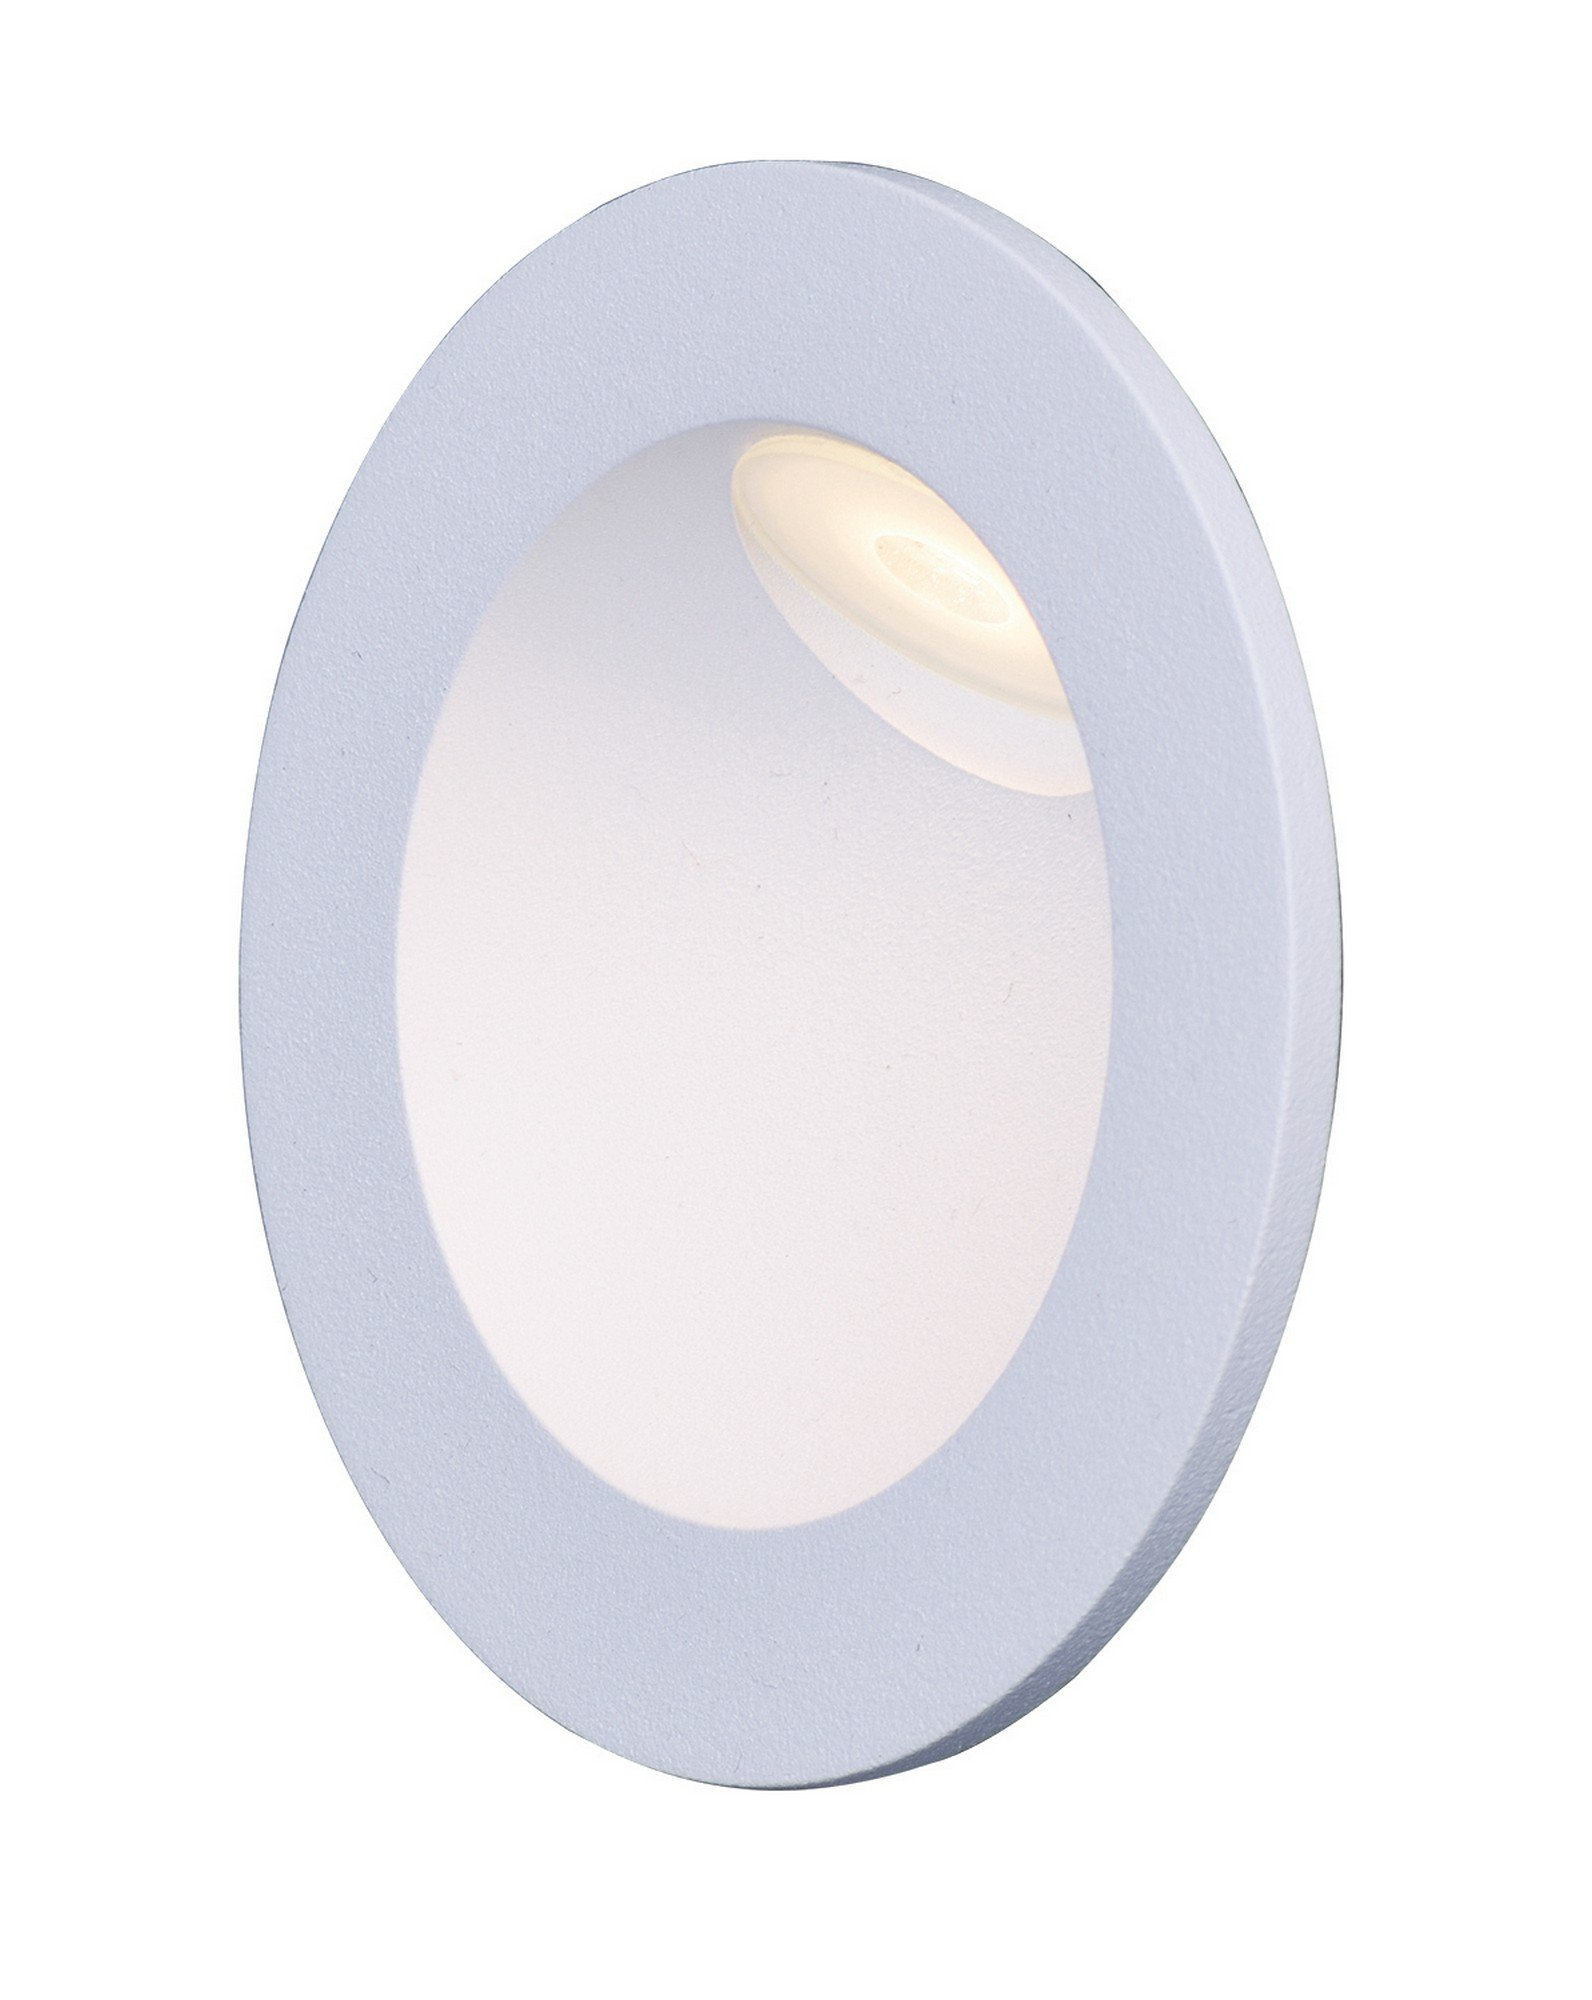 Maxim 58006WT Path LED Step Light, White Finish, Glass, PCB LED Bulb , 40W Max., Dry Safety Rating, Standard Dimmable, Shade Material, Rated Lumens